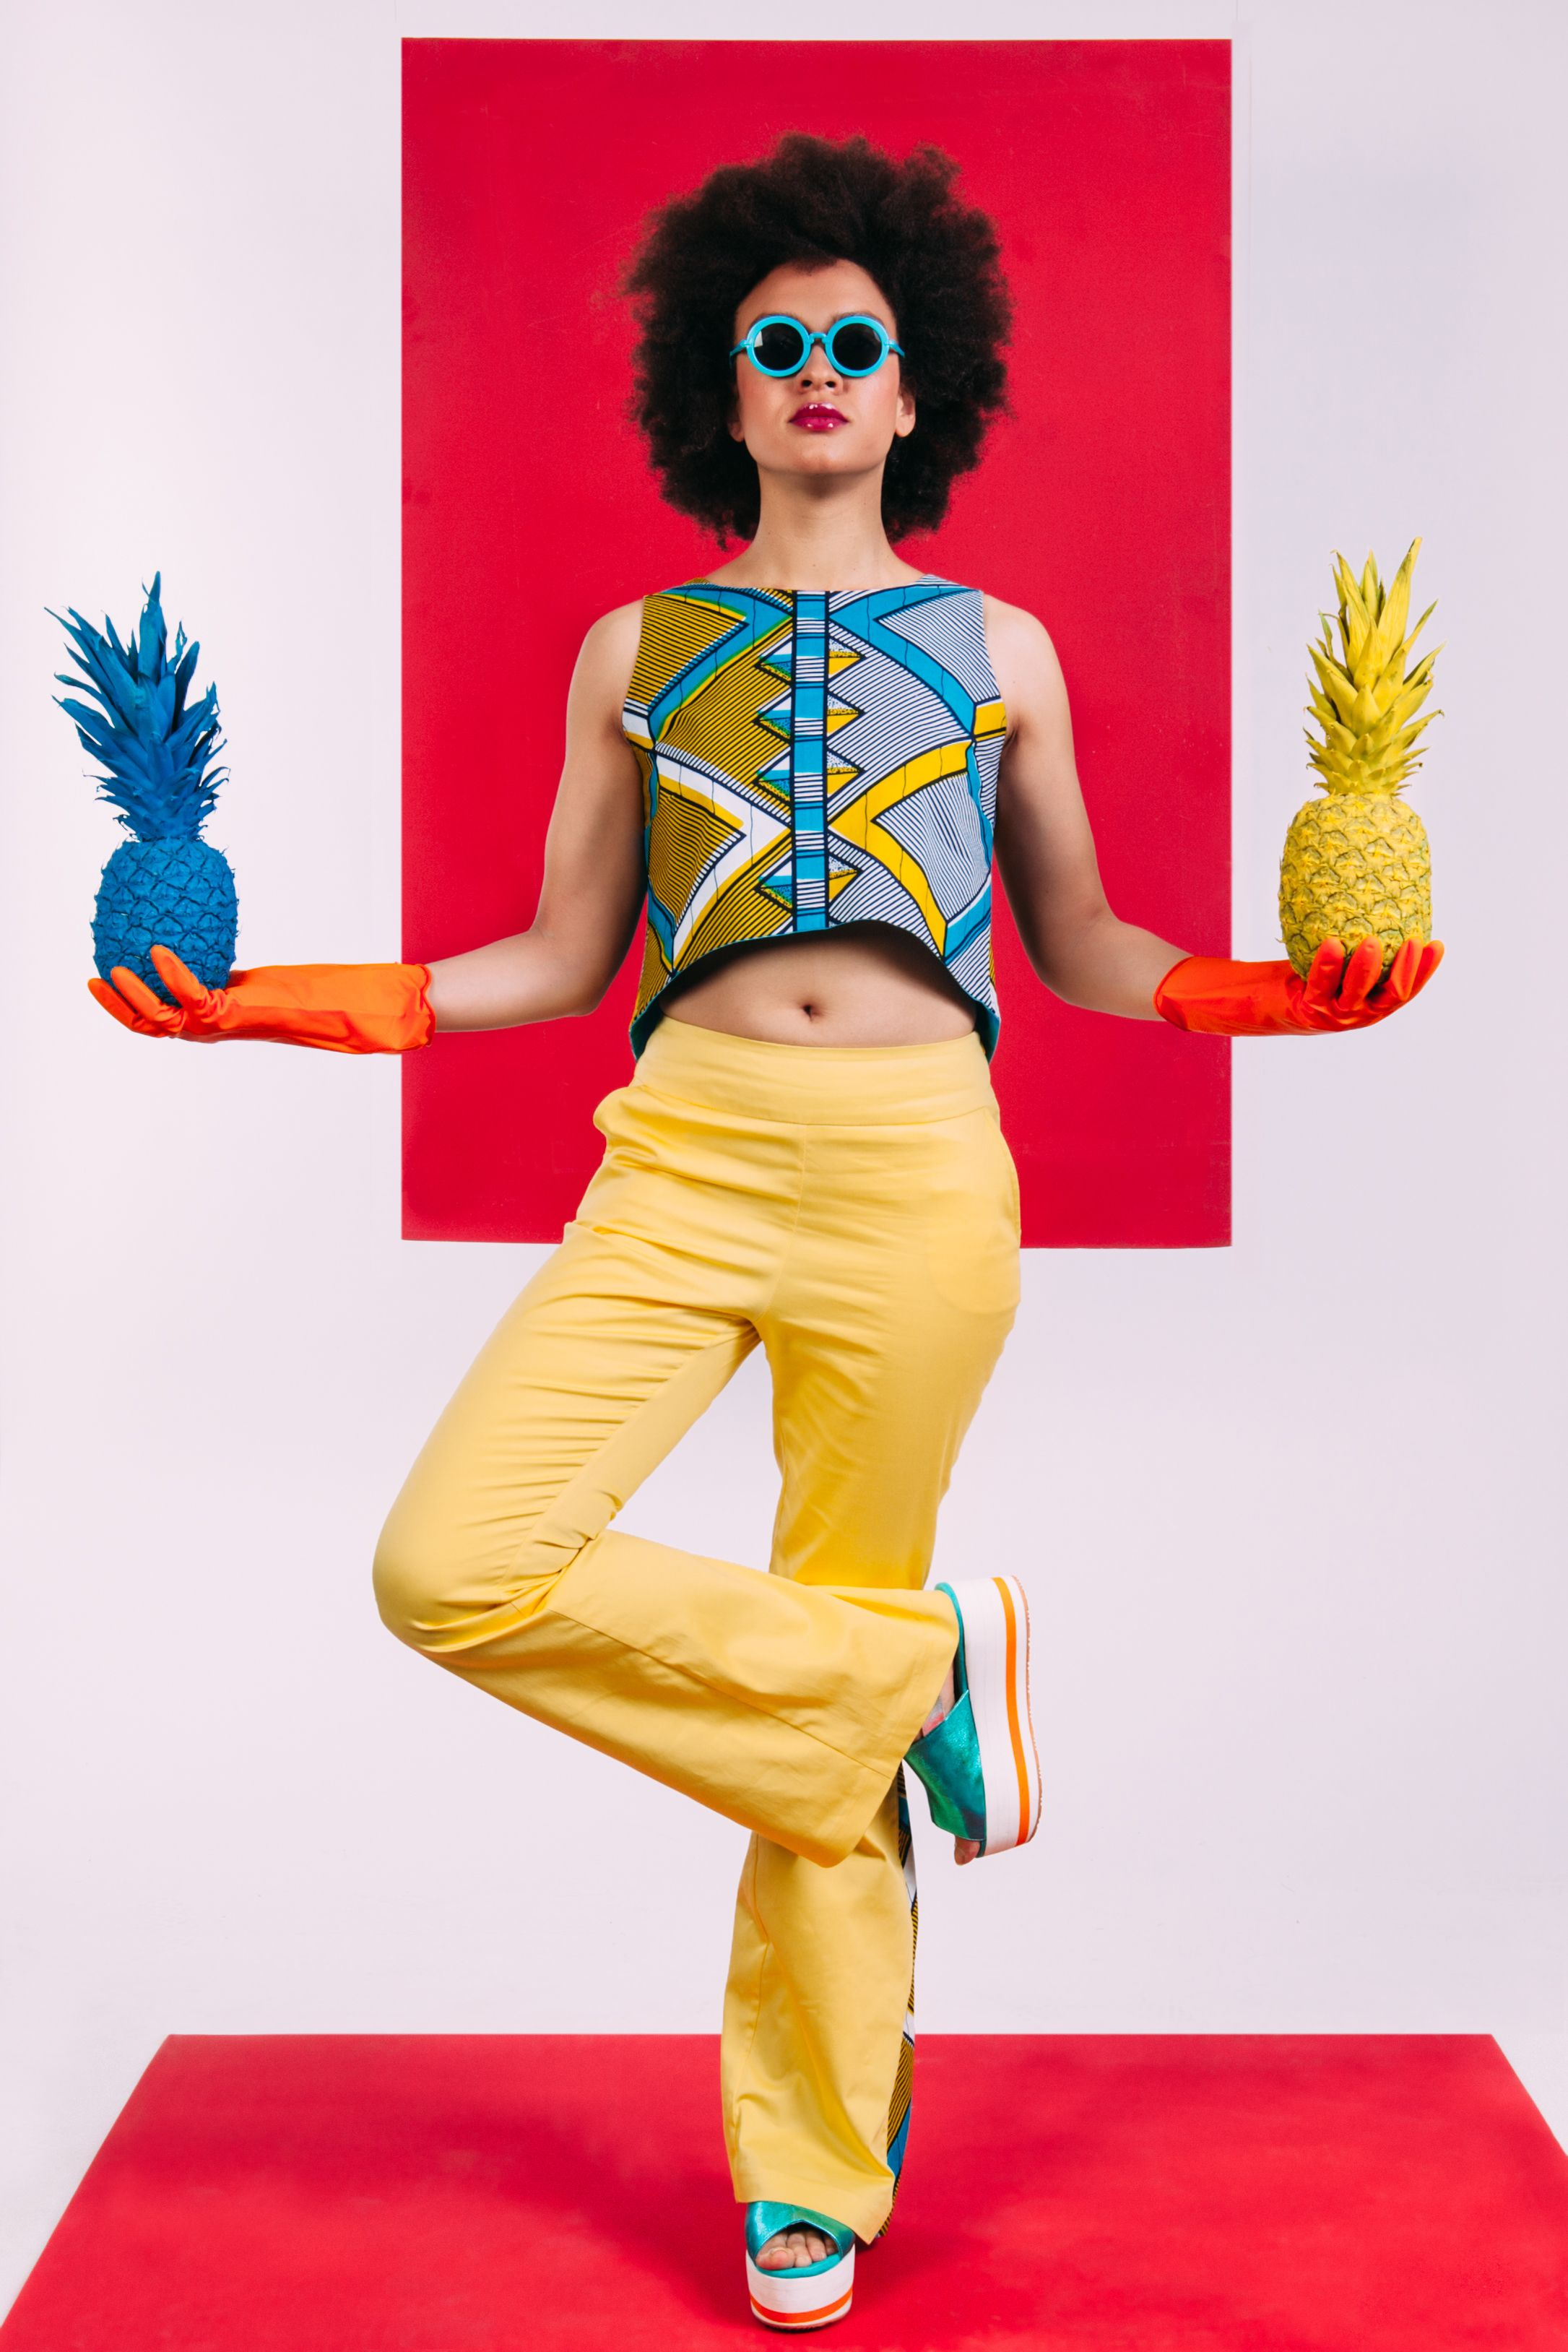 Sista Yellow Bell-Bottom Pants, printed in colorfull design to break the uniformity. High fitted waist belt. Made of cotton with the elements of yellow rhombus African Wax Print, which is a good choice for any occasion during this warm summer. The pants match perfectly with with Sista yellow rhombus shirt, Sista blue shirt or Sista yellow rhombus mini shirt.